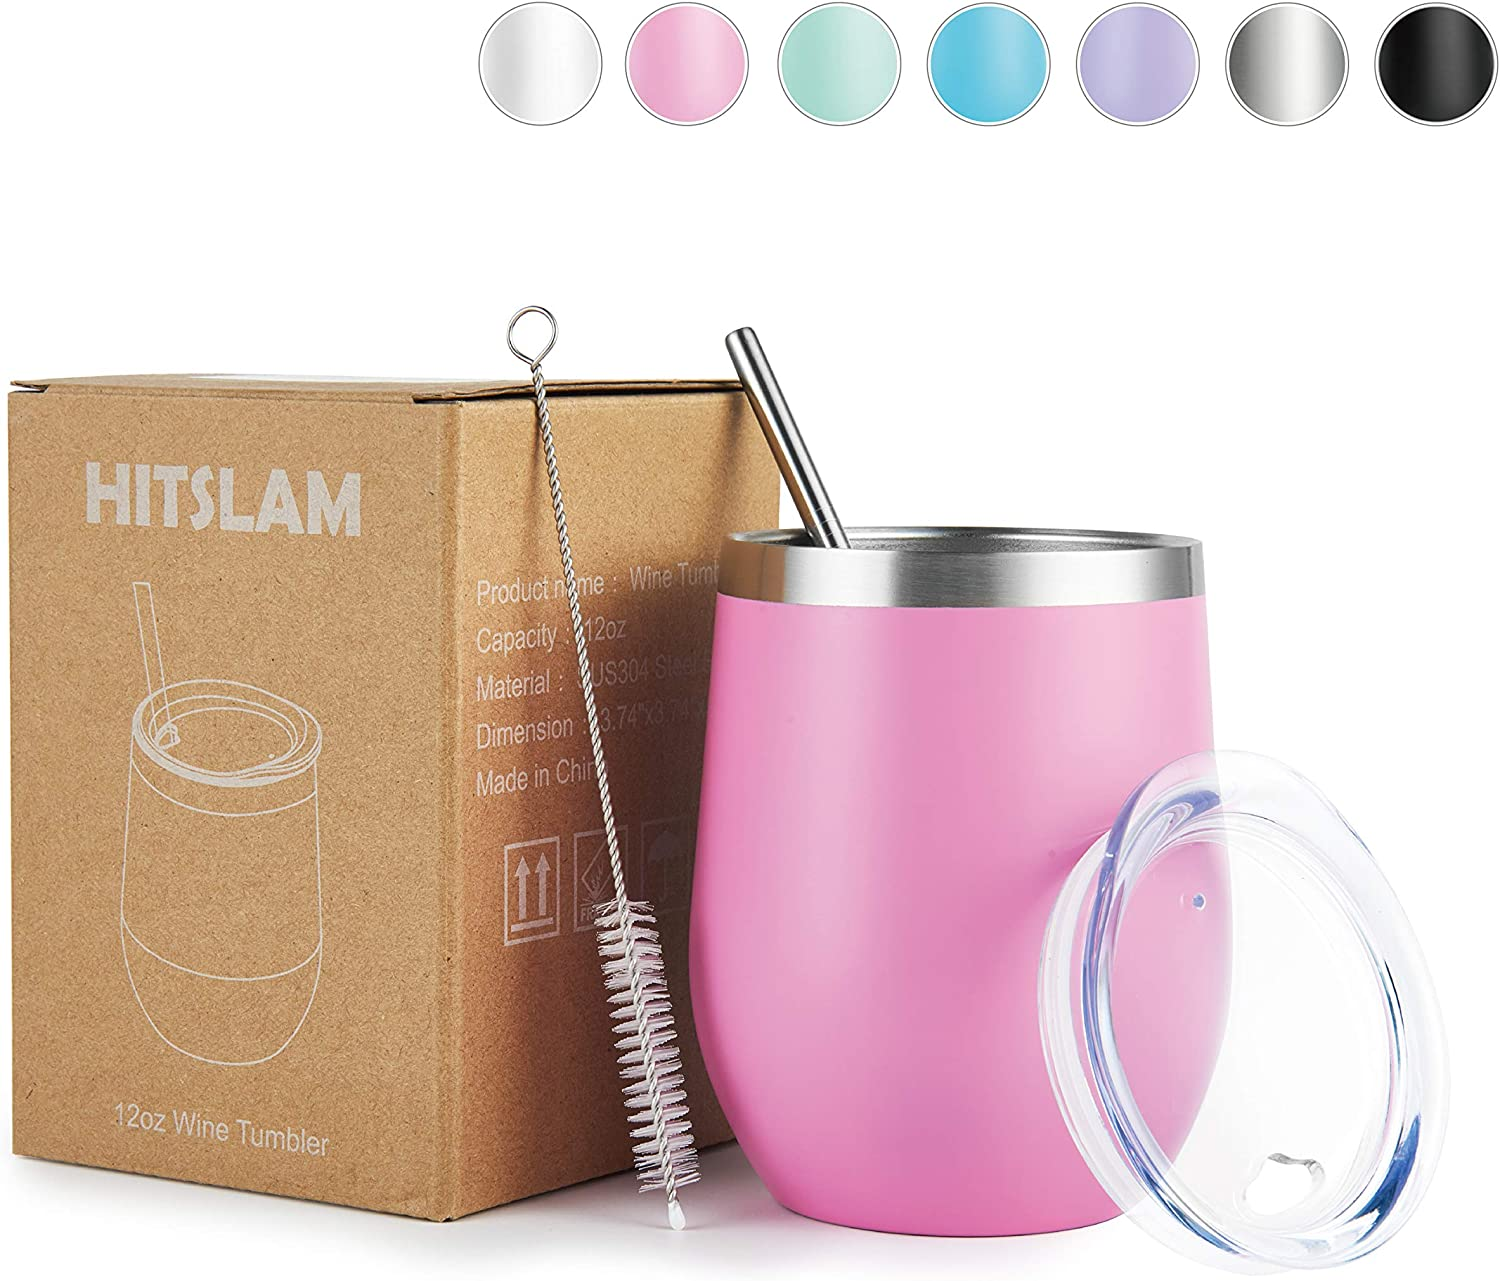 HITSLAM Wine Tumbler 12oz Stainless Steel Tumbler Vacuum Insulated Wine Glass Double Wall Coffee Mug for Champaign, Beer, Office use includes Straw Lid, Straw, Cleaning Brush (Pink)